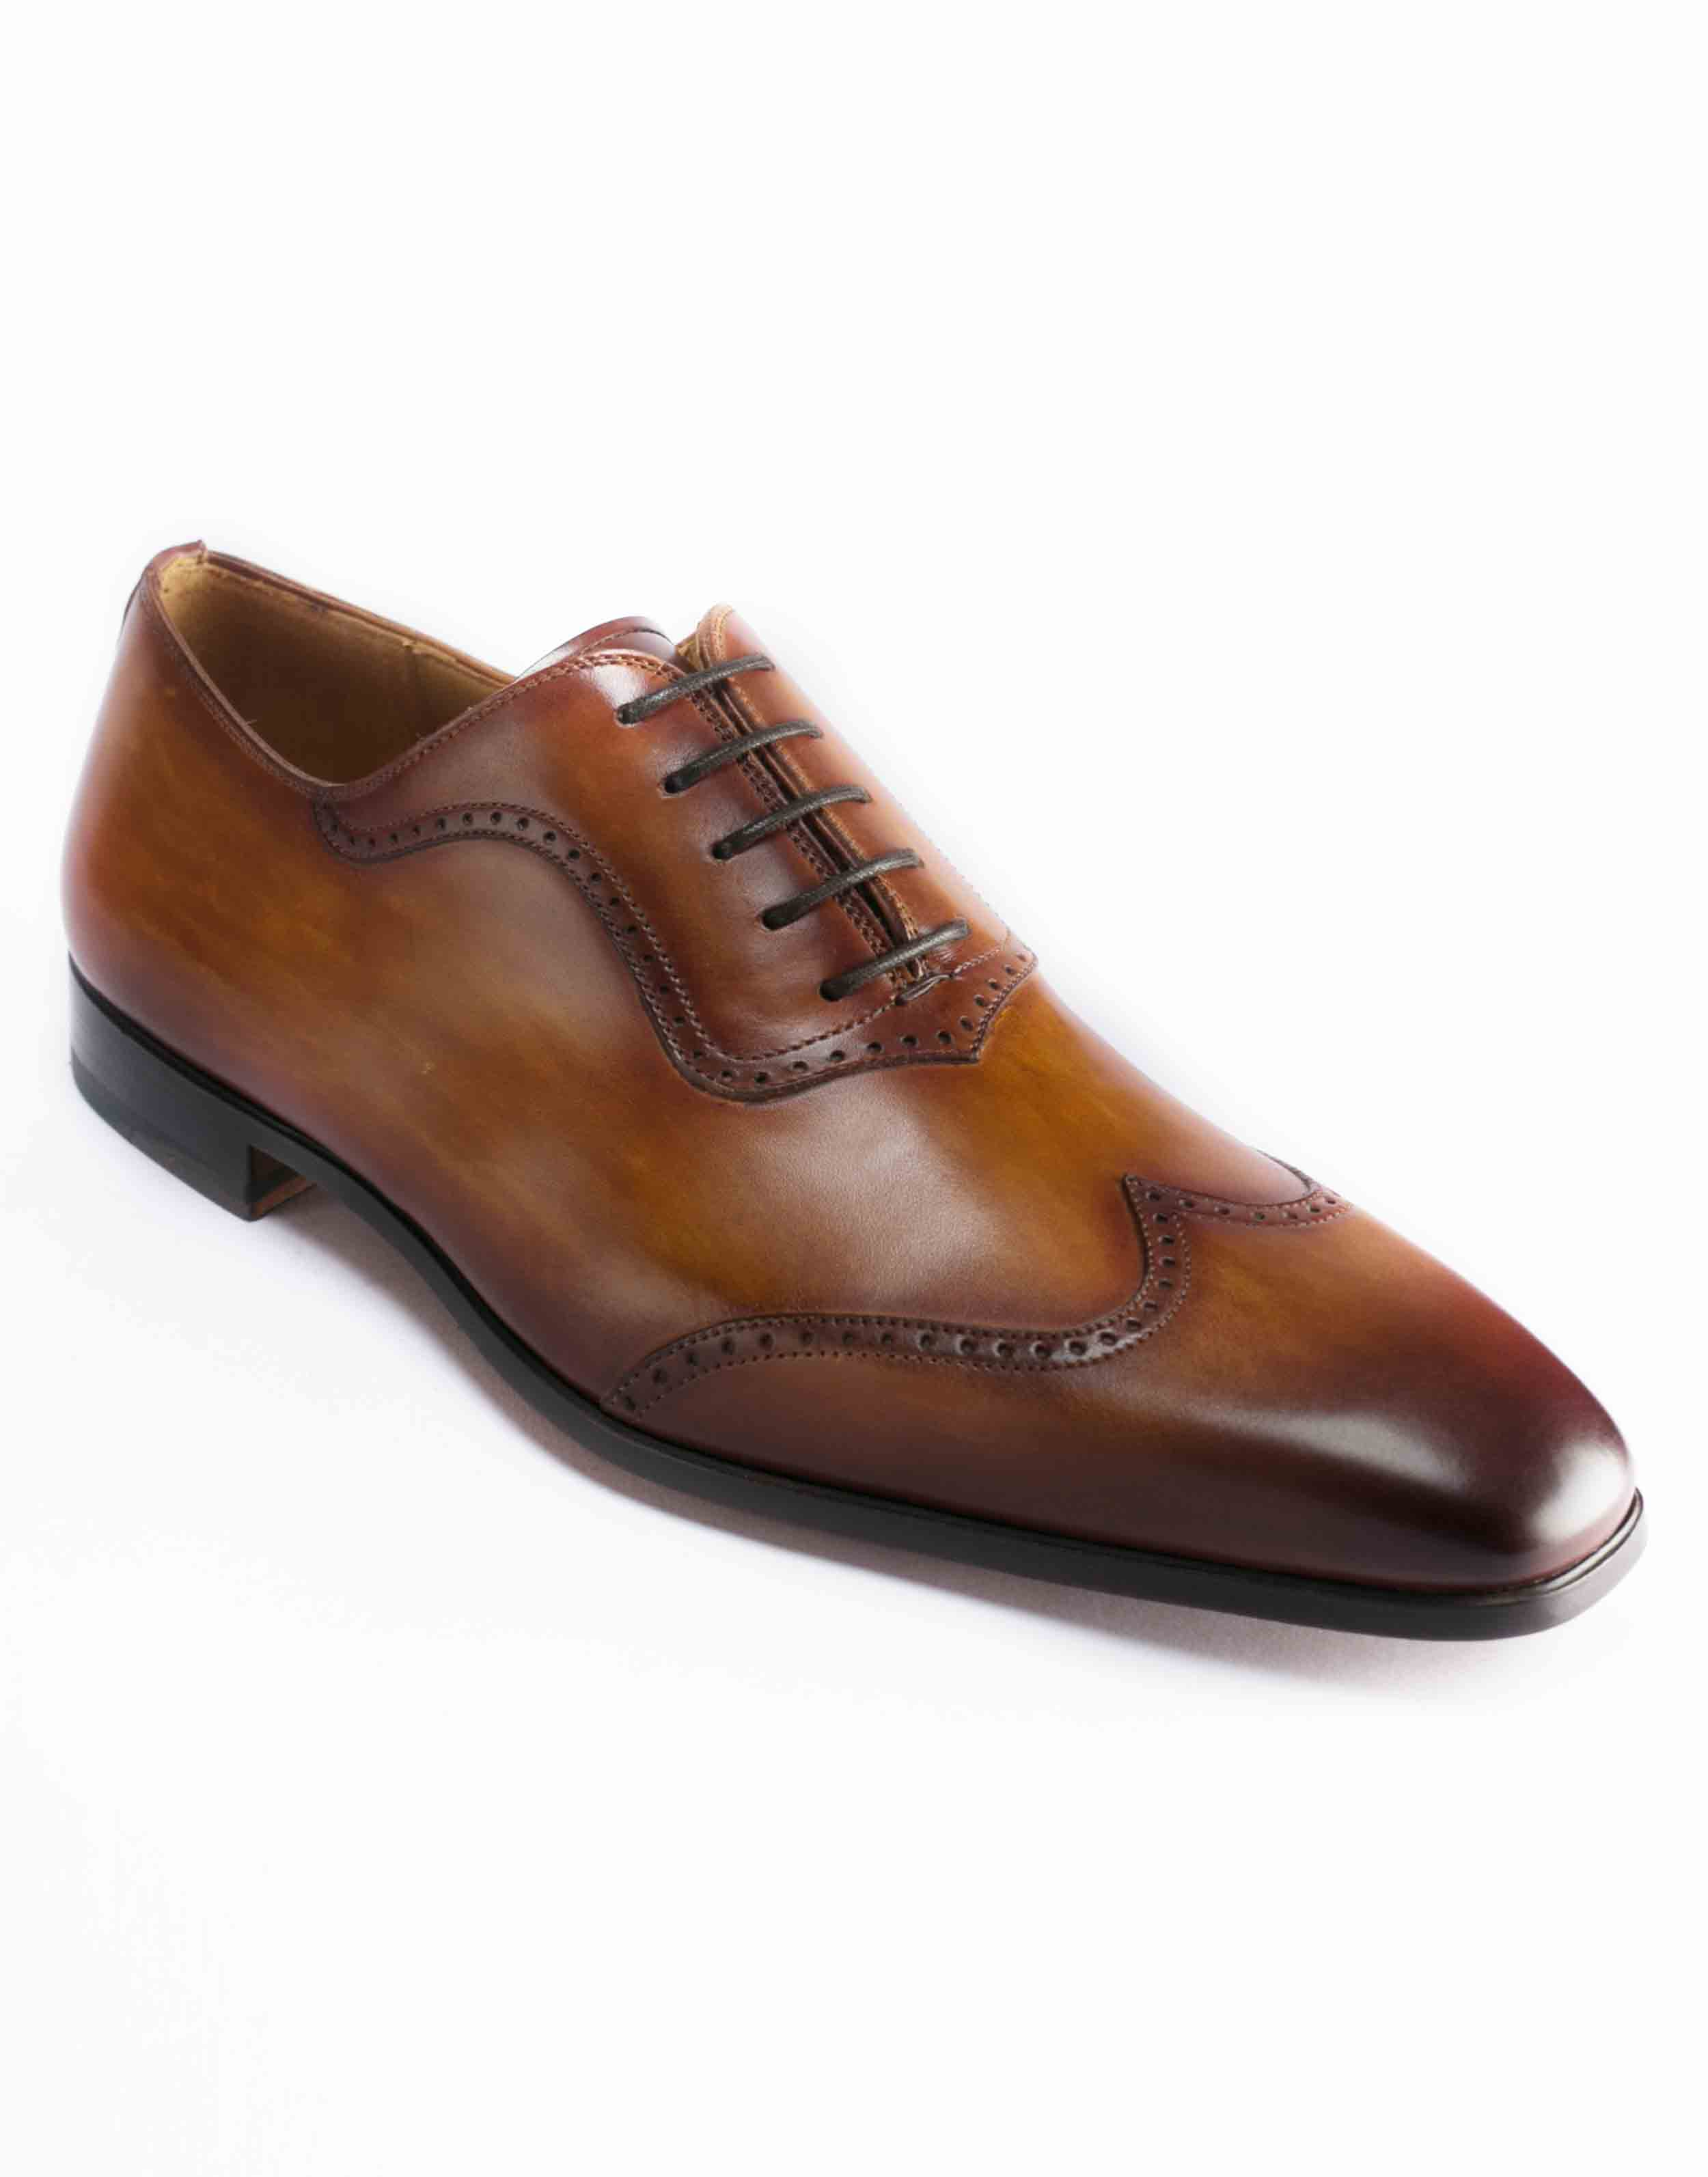 CUERO WINGTIP OXFORDS2